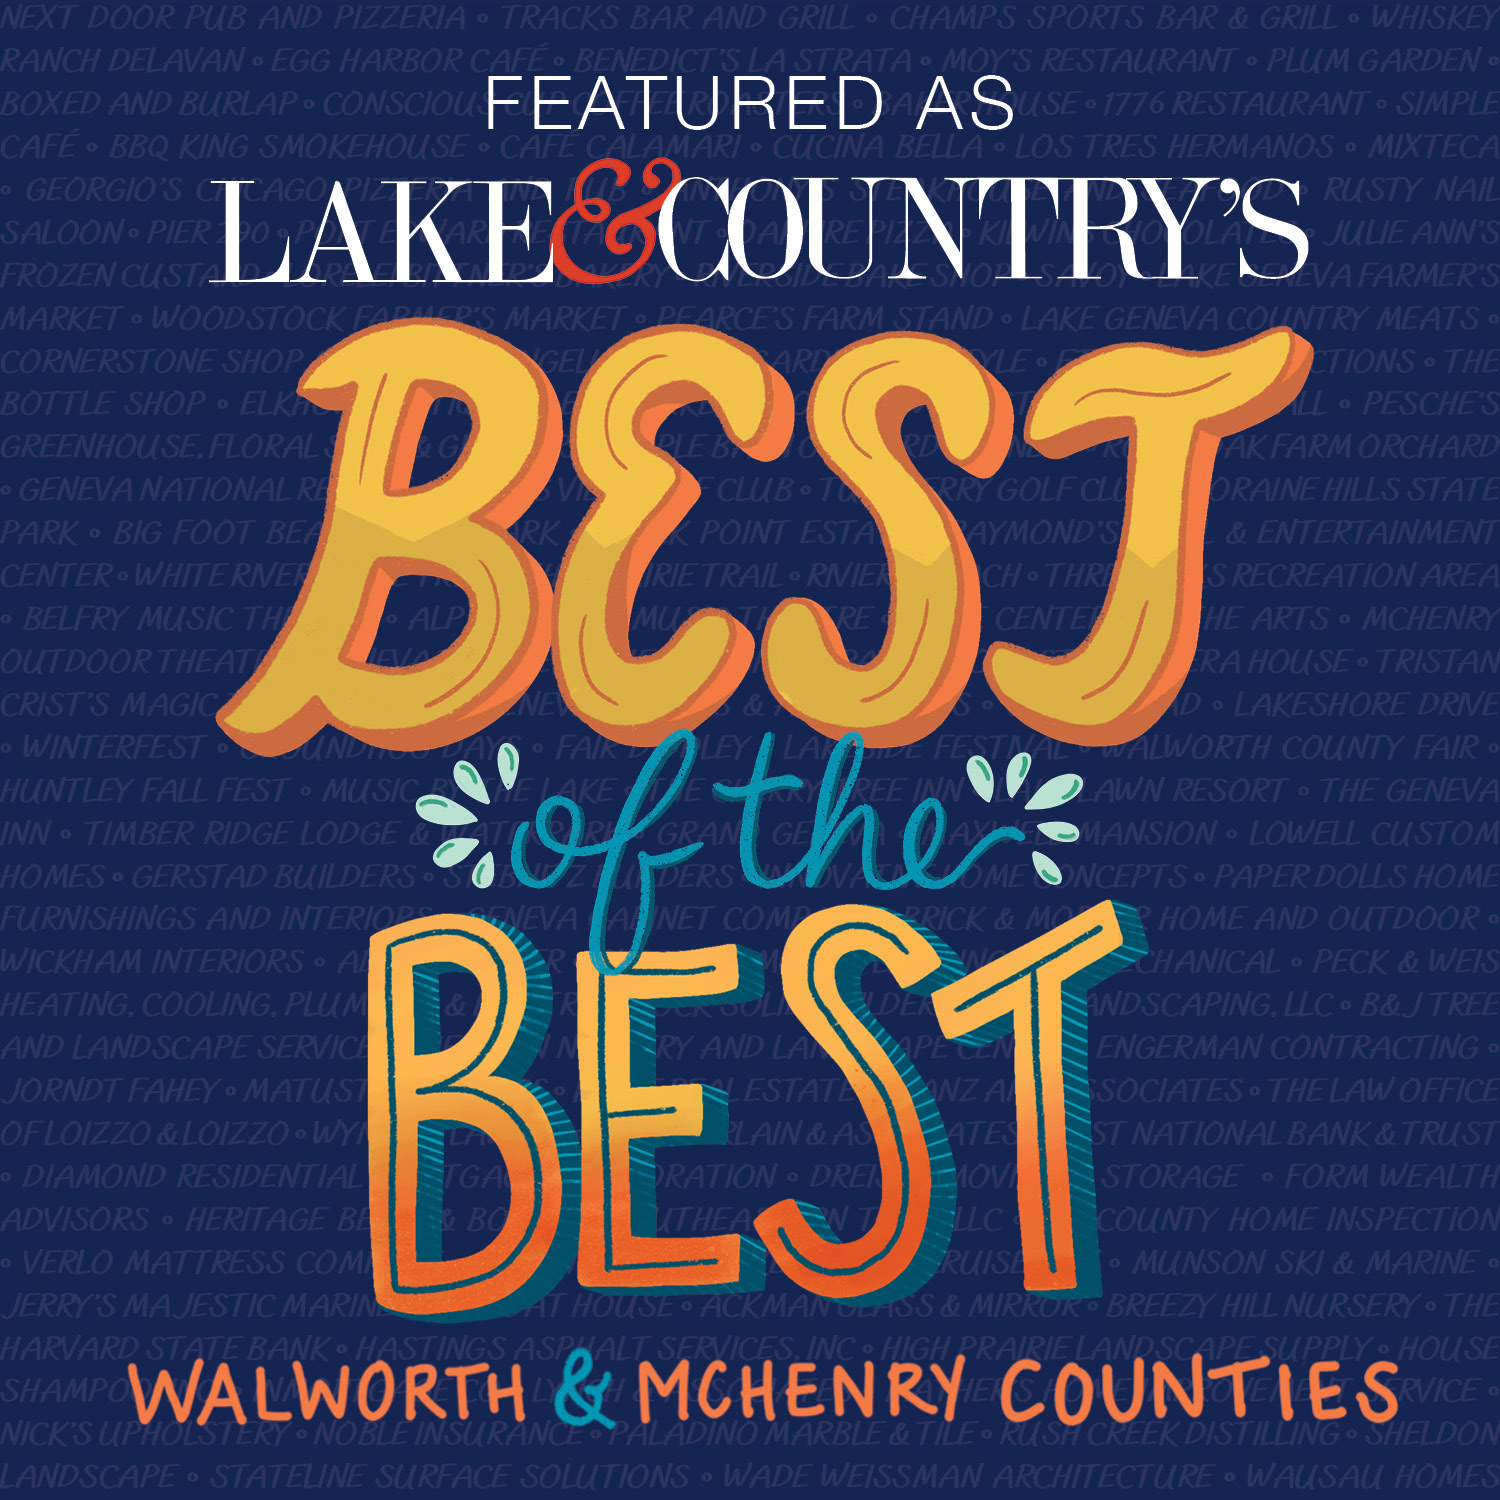 Best of The Best Walworth County Law Firm 2021 - Lake & Country